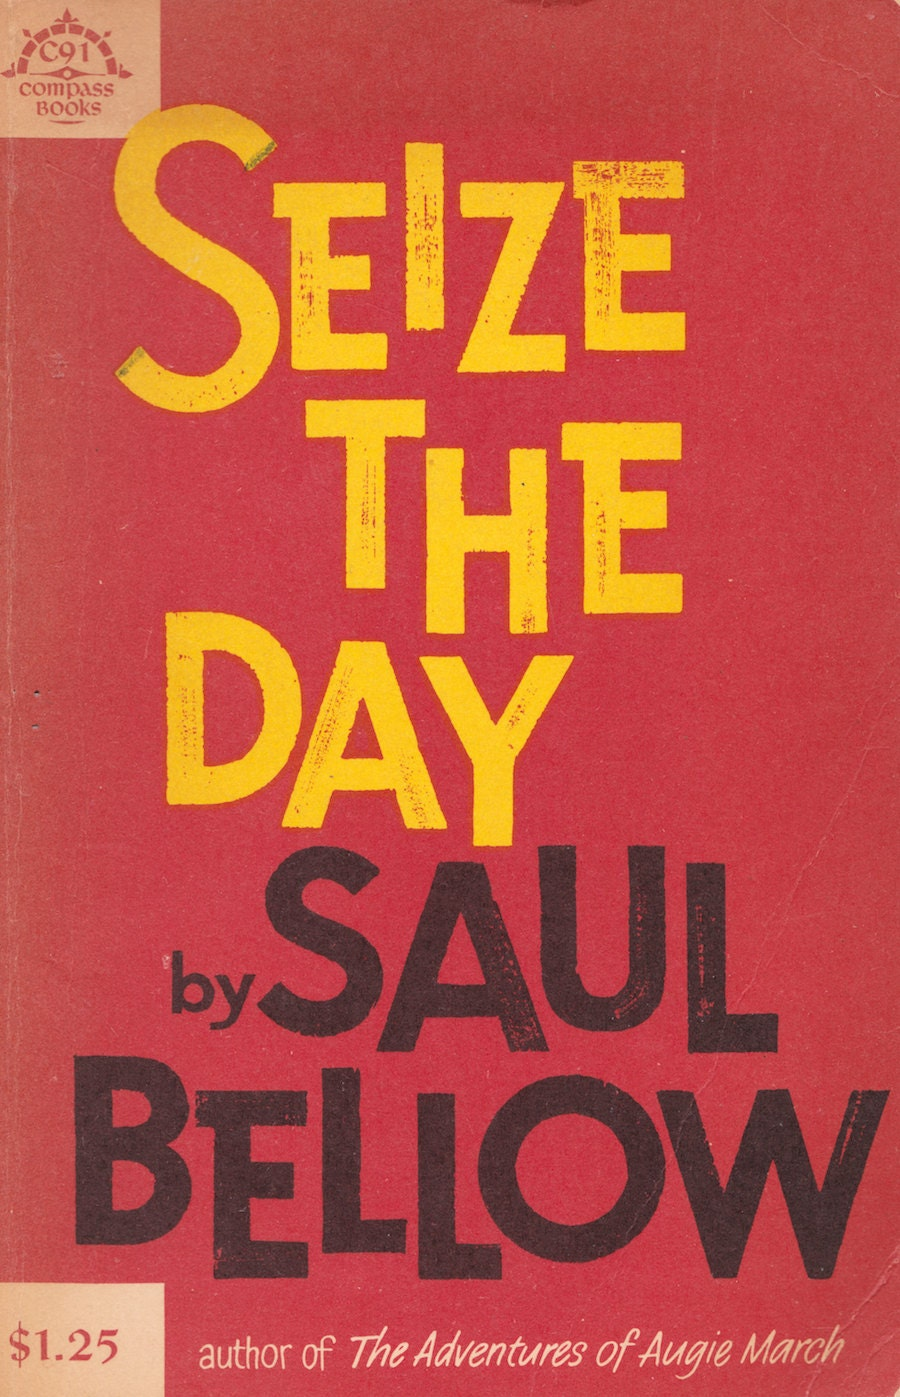 characteristics of tommy wilhelm in seize of the day by saul bellow Seize the day - ebook written by saul bellow read this book using google play books app on your pc, android, ios devices download for offline reading, highlight, bookmark or take notes while you read seize the day.